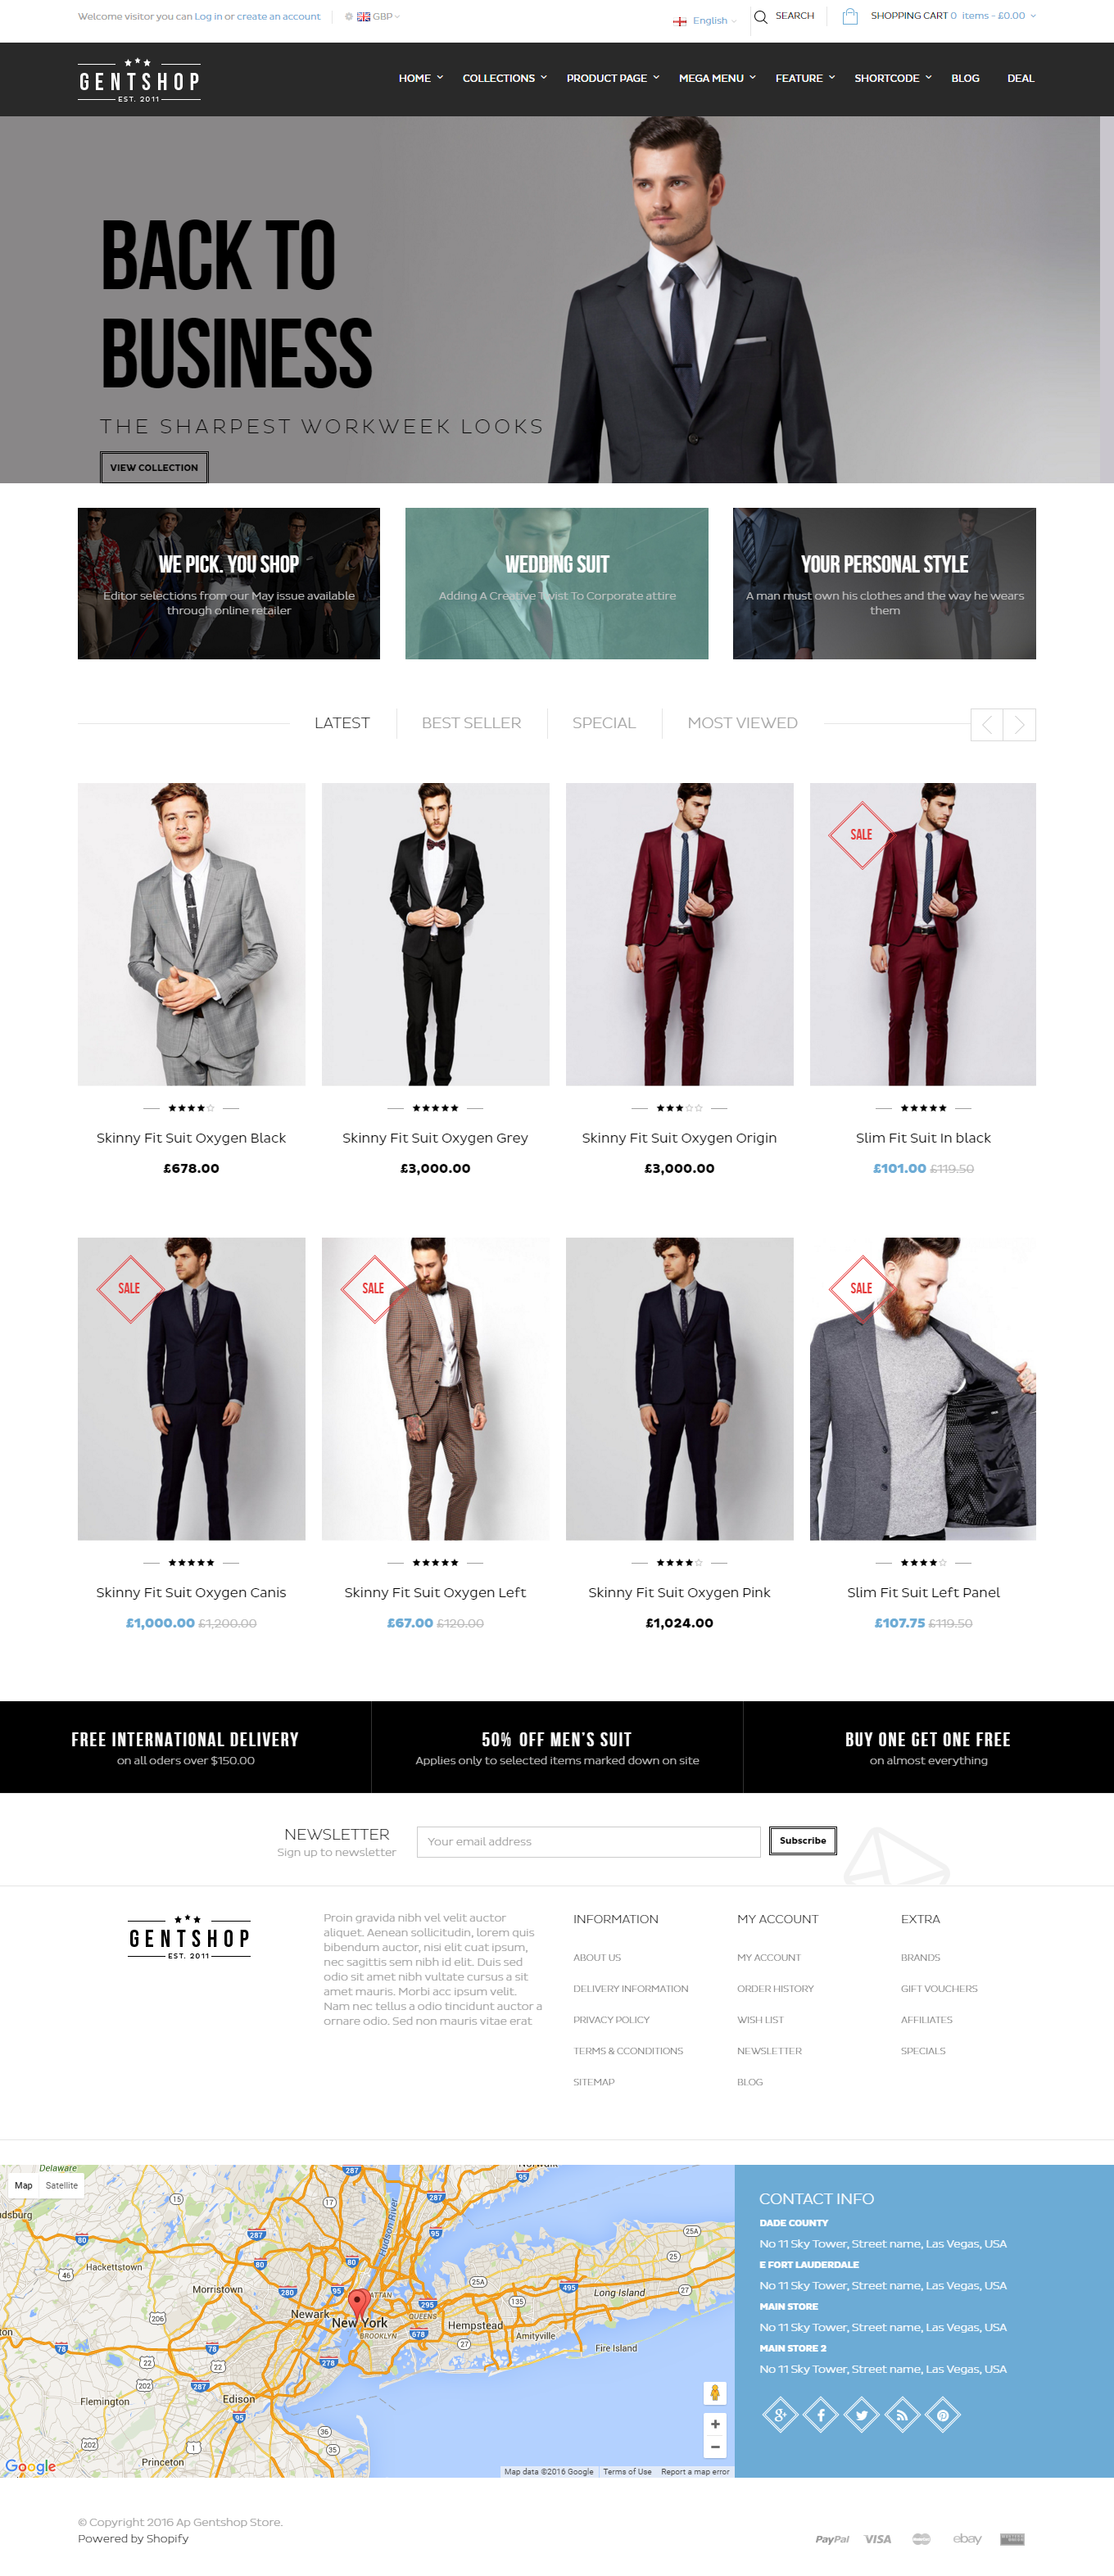 Ap Mochi Fashion is totally Responsive Shopify Theme. Ap Mochi fashion has clear and professional homepages thus you can easily create great stores. Demo: http://apollotheme.com/demo-themes/?product=ap-mochi-fashion-shopify-theme Download: http://apollotheme.com/products/ap-mochi-fashion-shopify-theme/